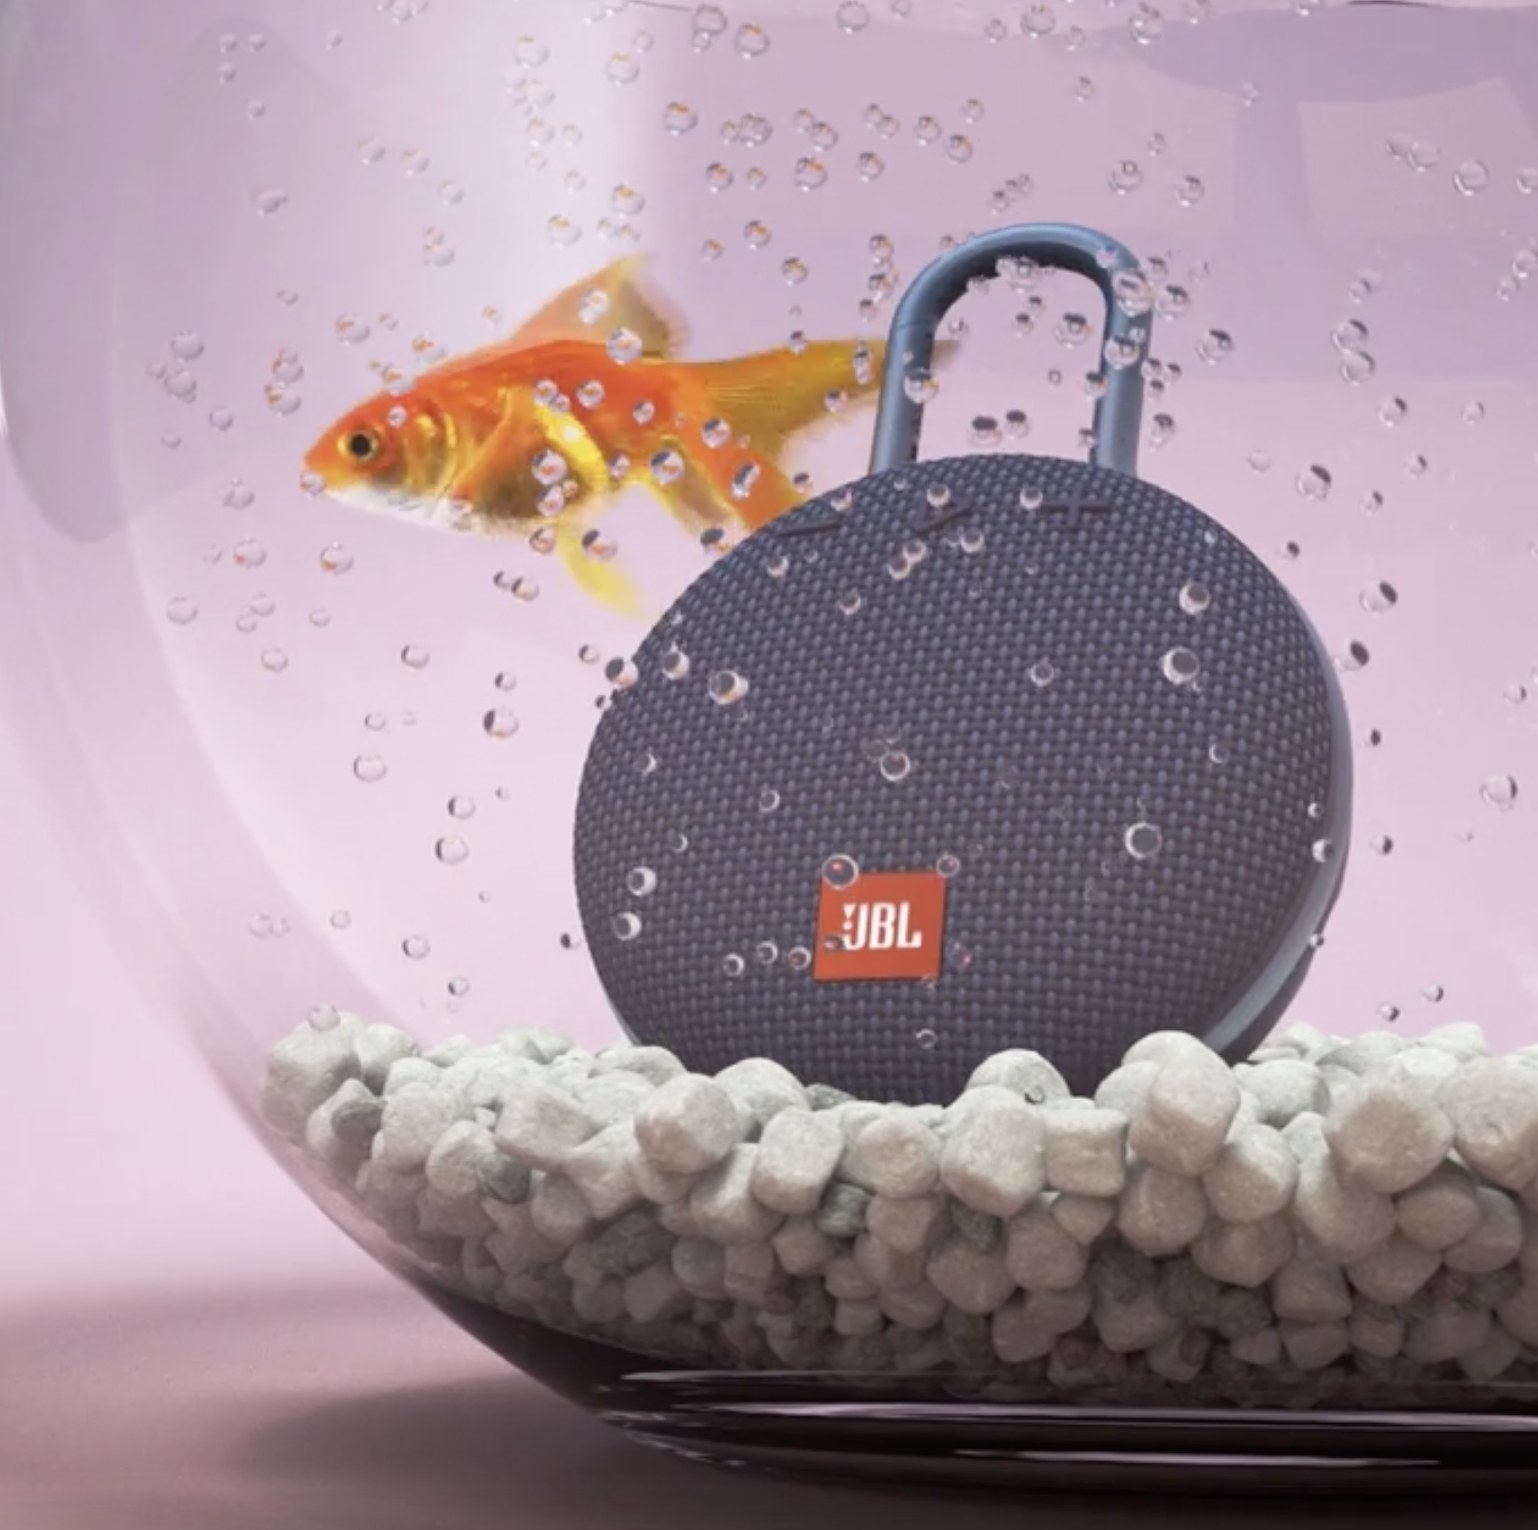 The speaker in a fish bowl